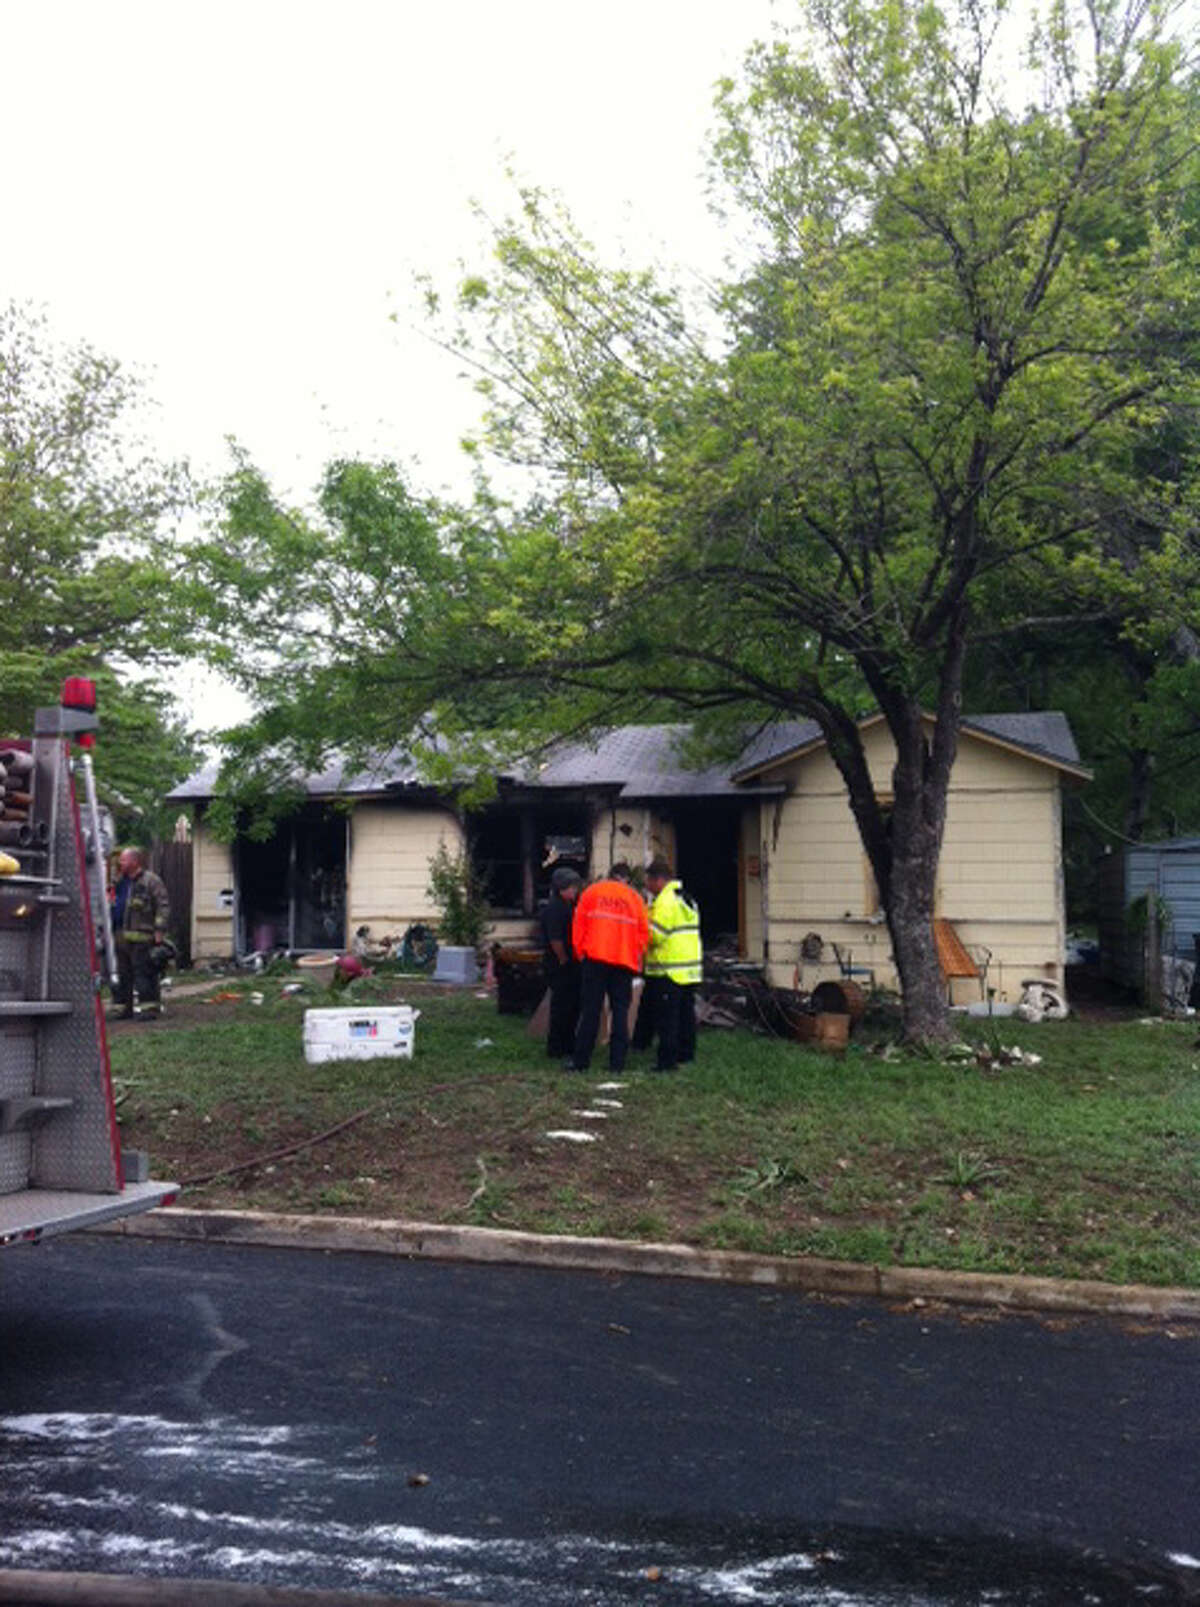 Firefighters examine the site of a house fire that left a woman in critical condition Thursday about 11 a.m. at the 100 block of Heather Avenue.